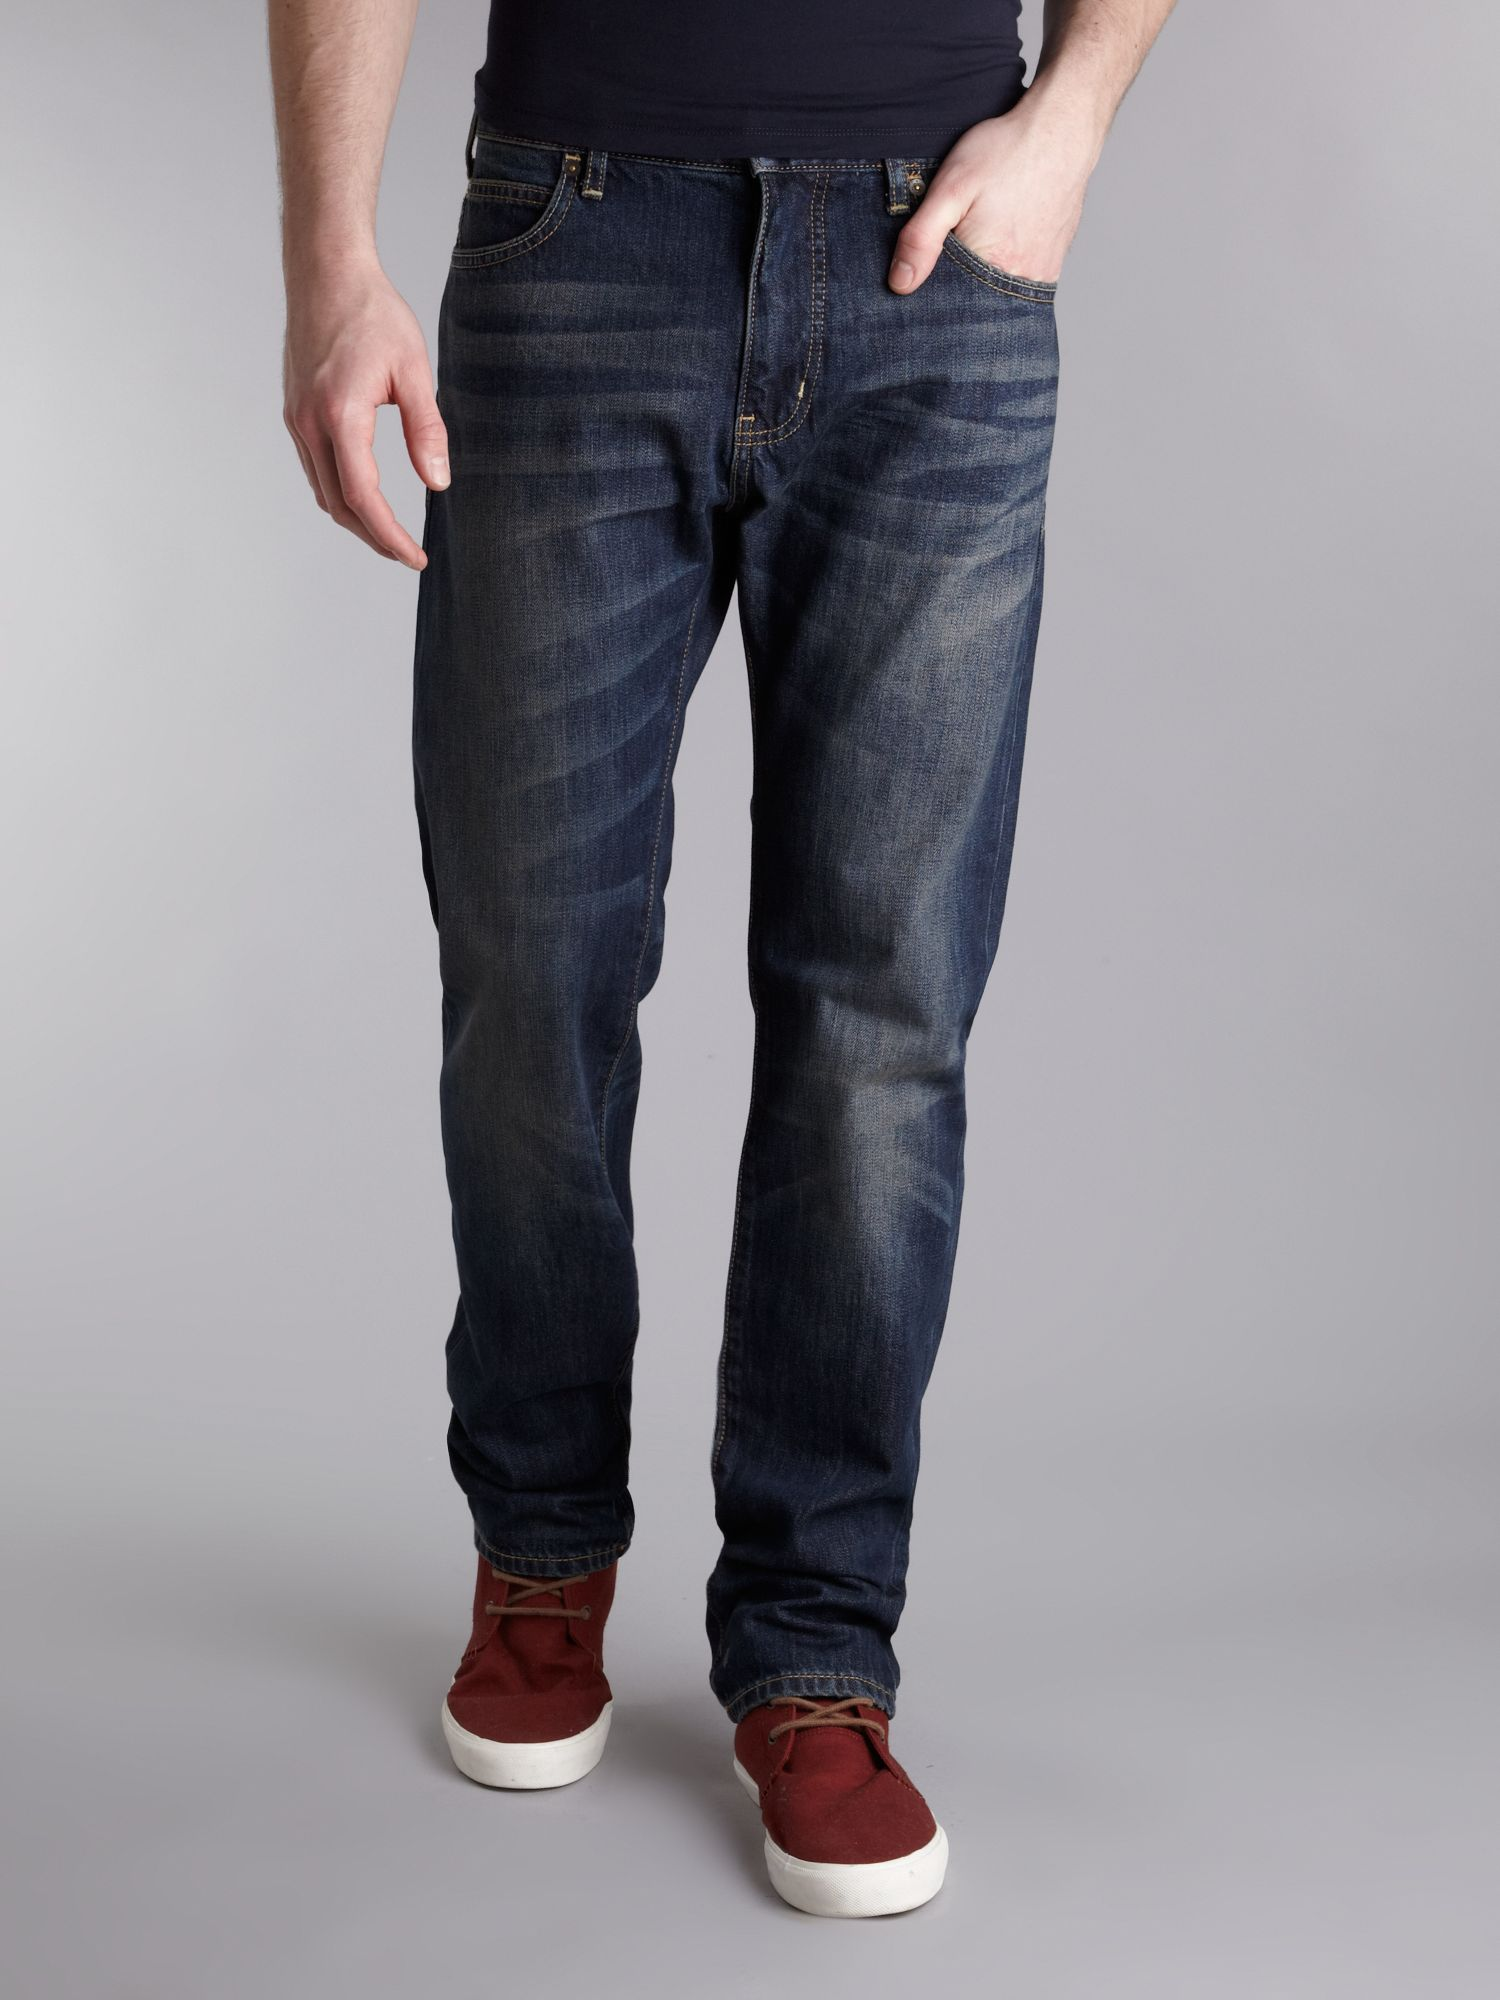 J45 tapered fit dirty wash jeans